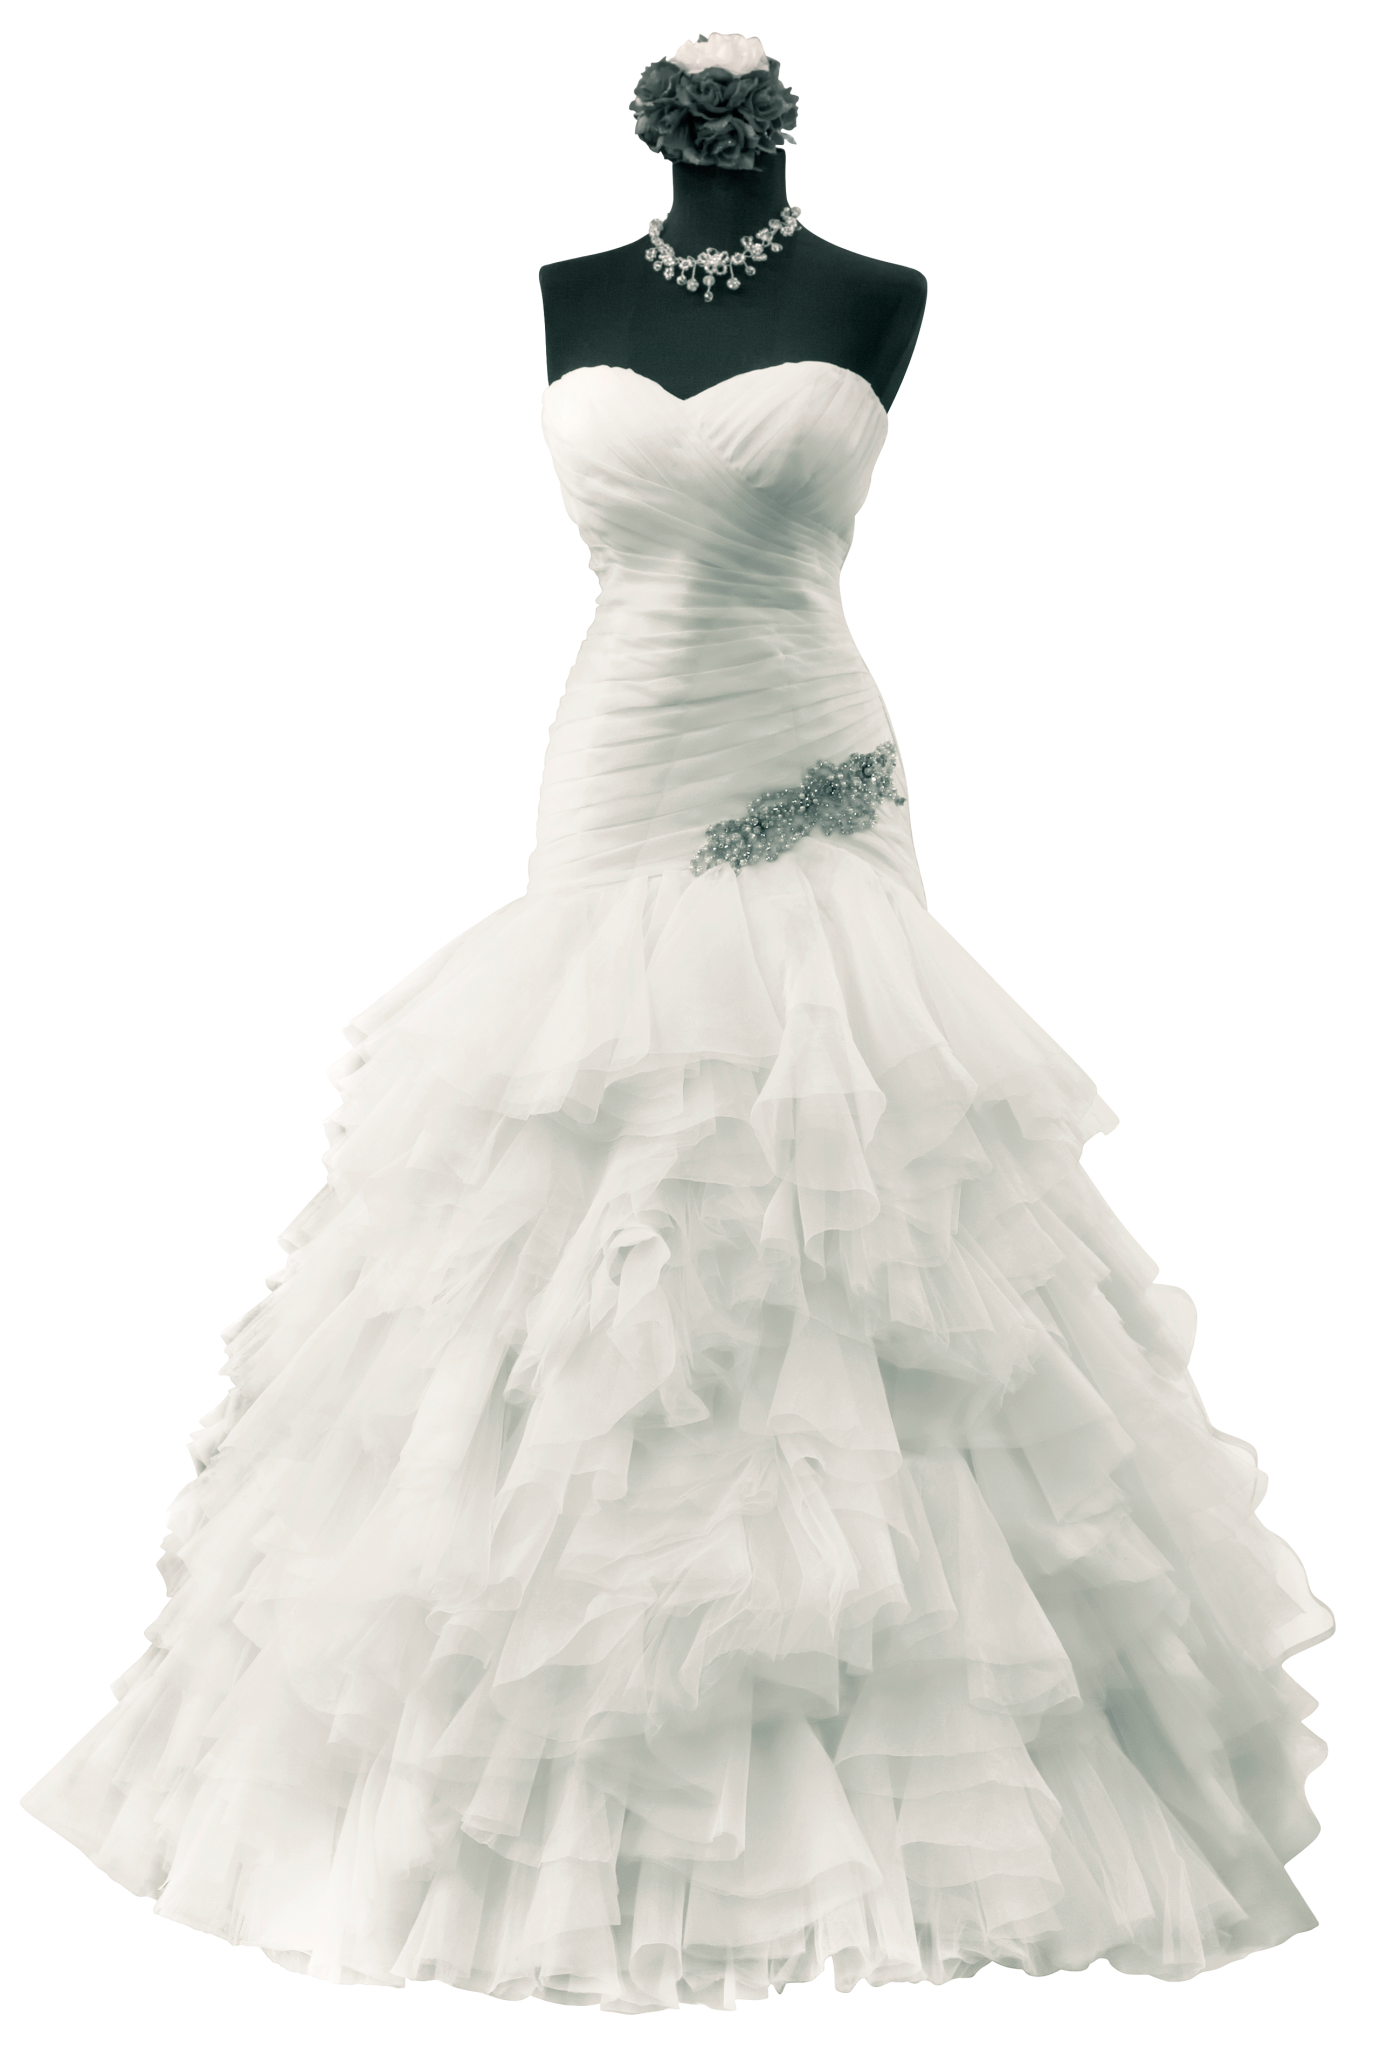 Bridal Gown – Clean and Press - Dry Cleaning & Laundry Delivery Service